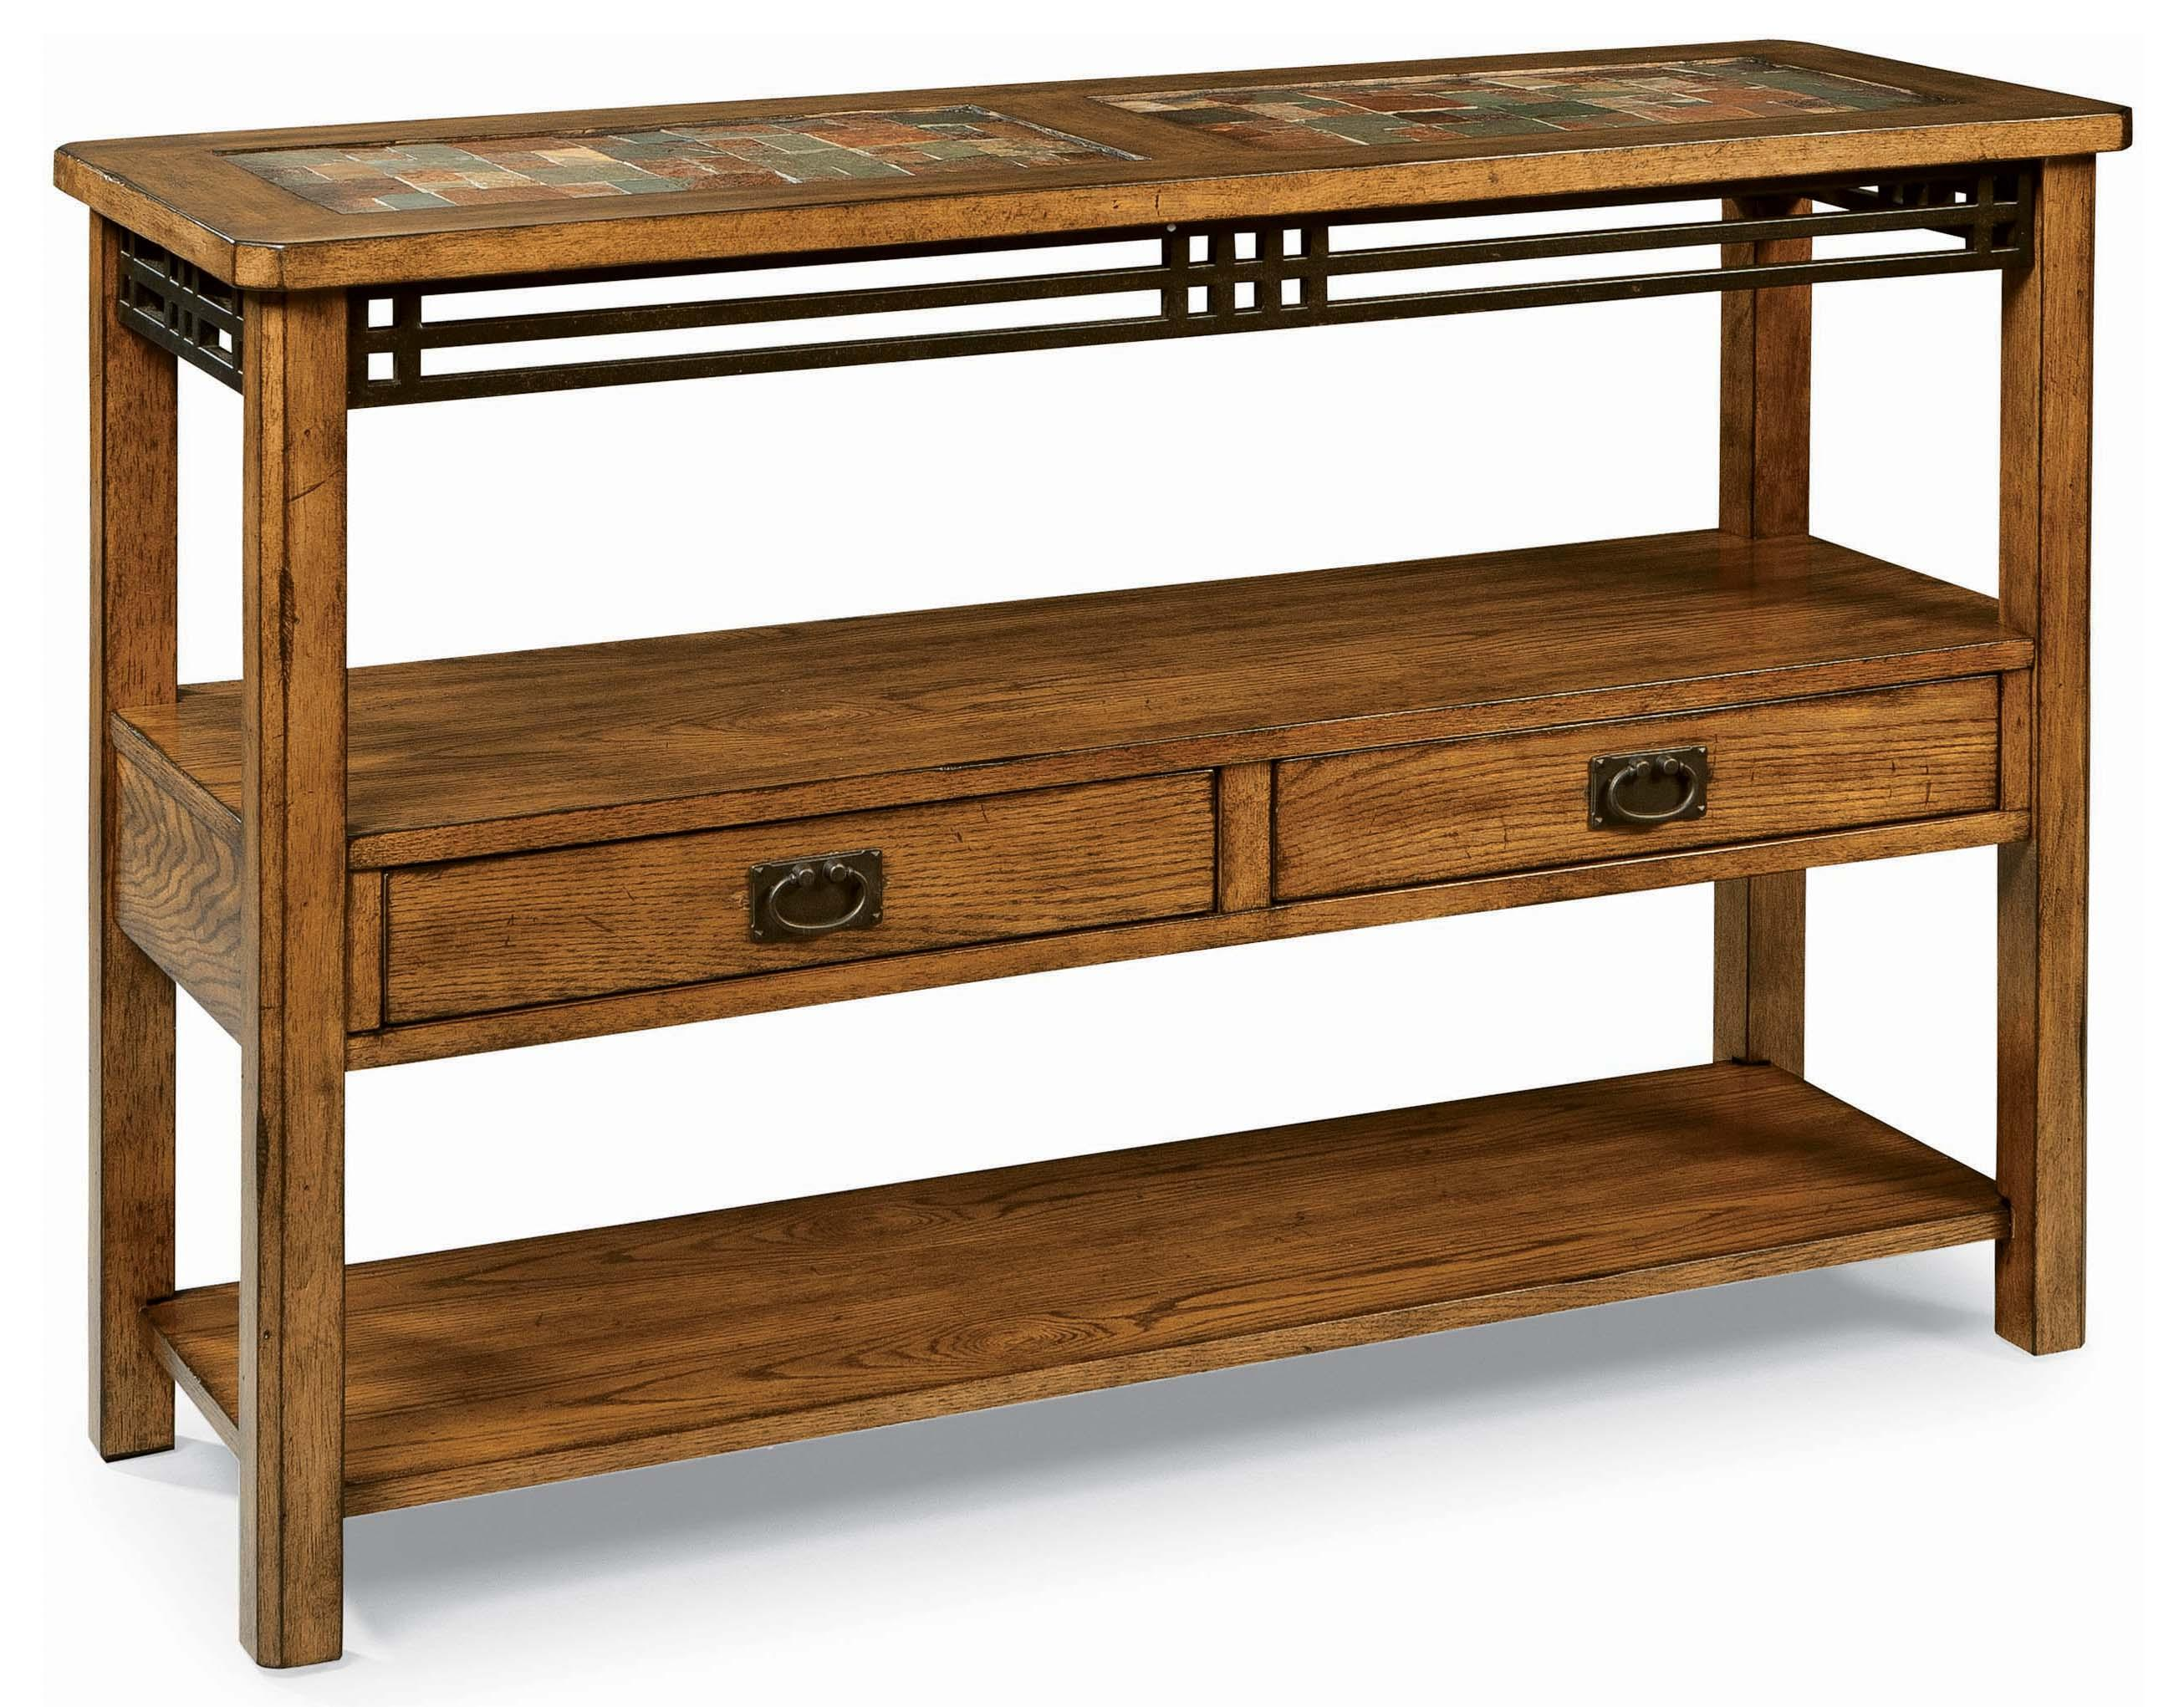 Peters revington american craftsman oak sofa table with for Sofa table cabinet